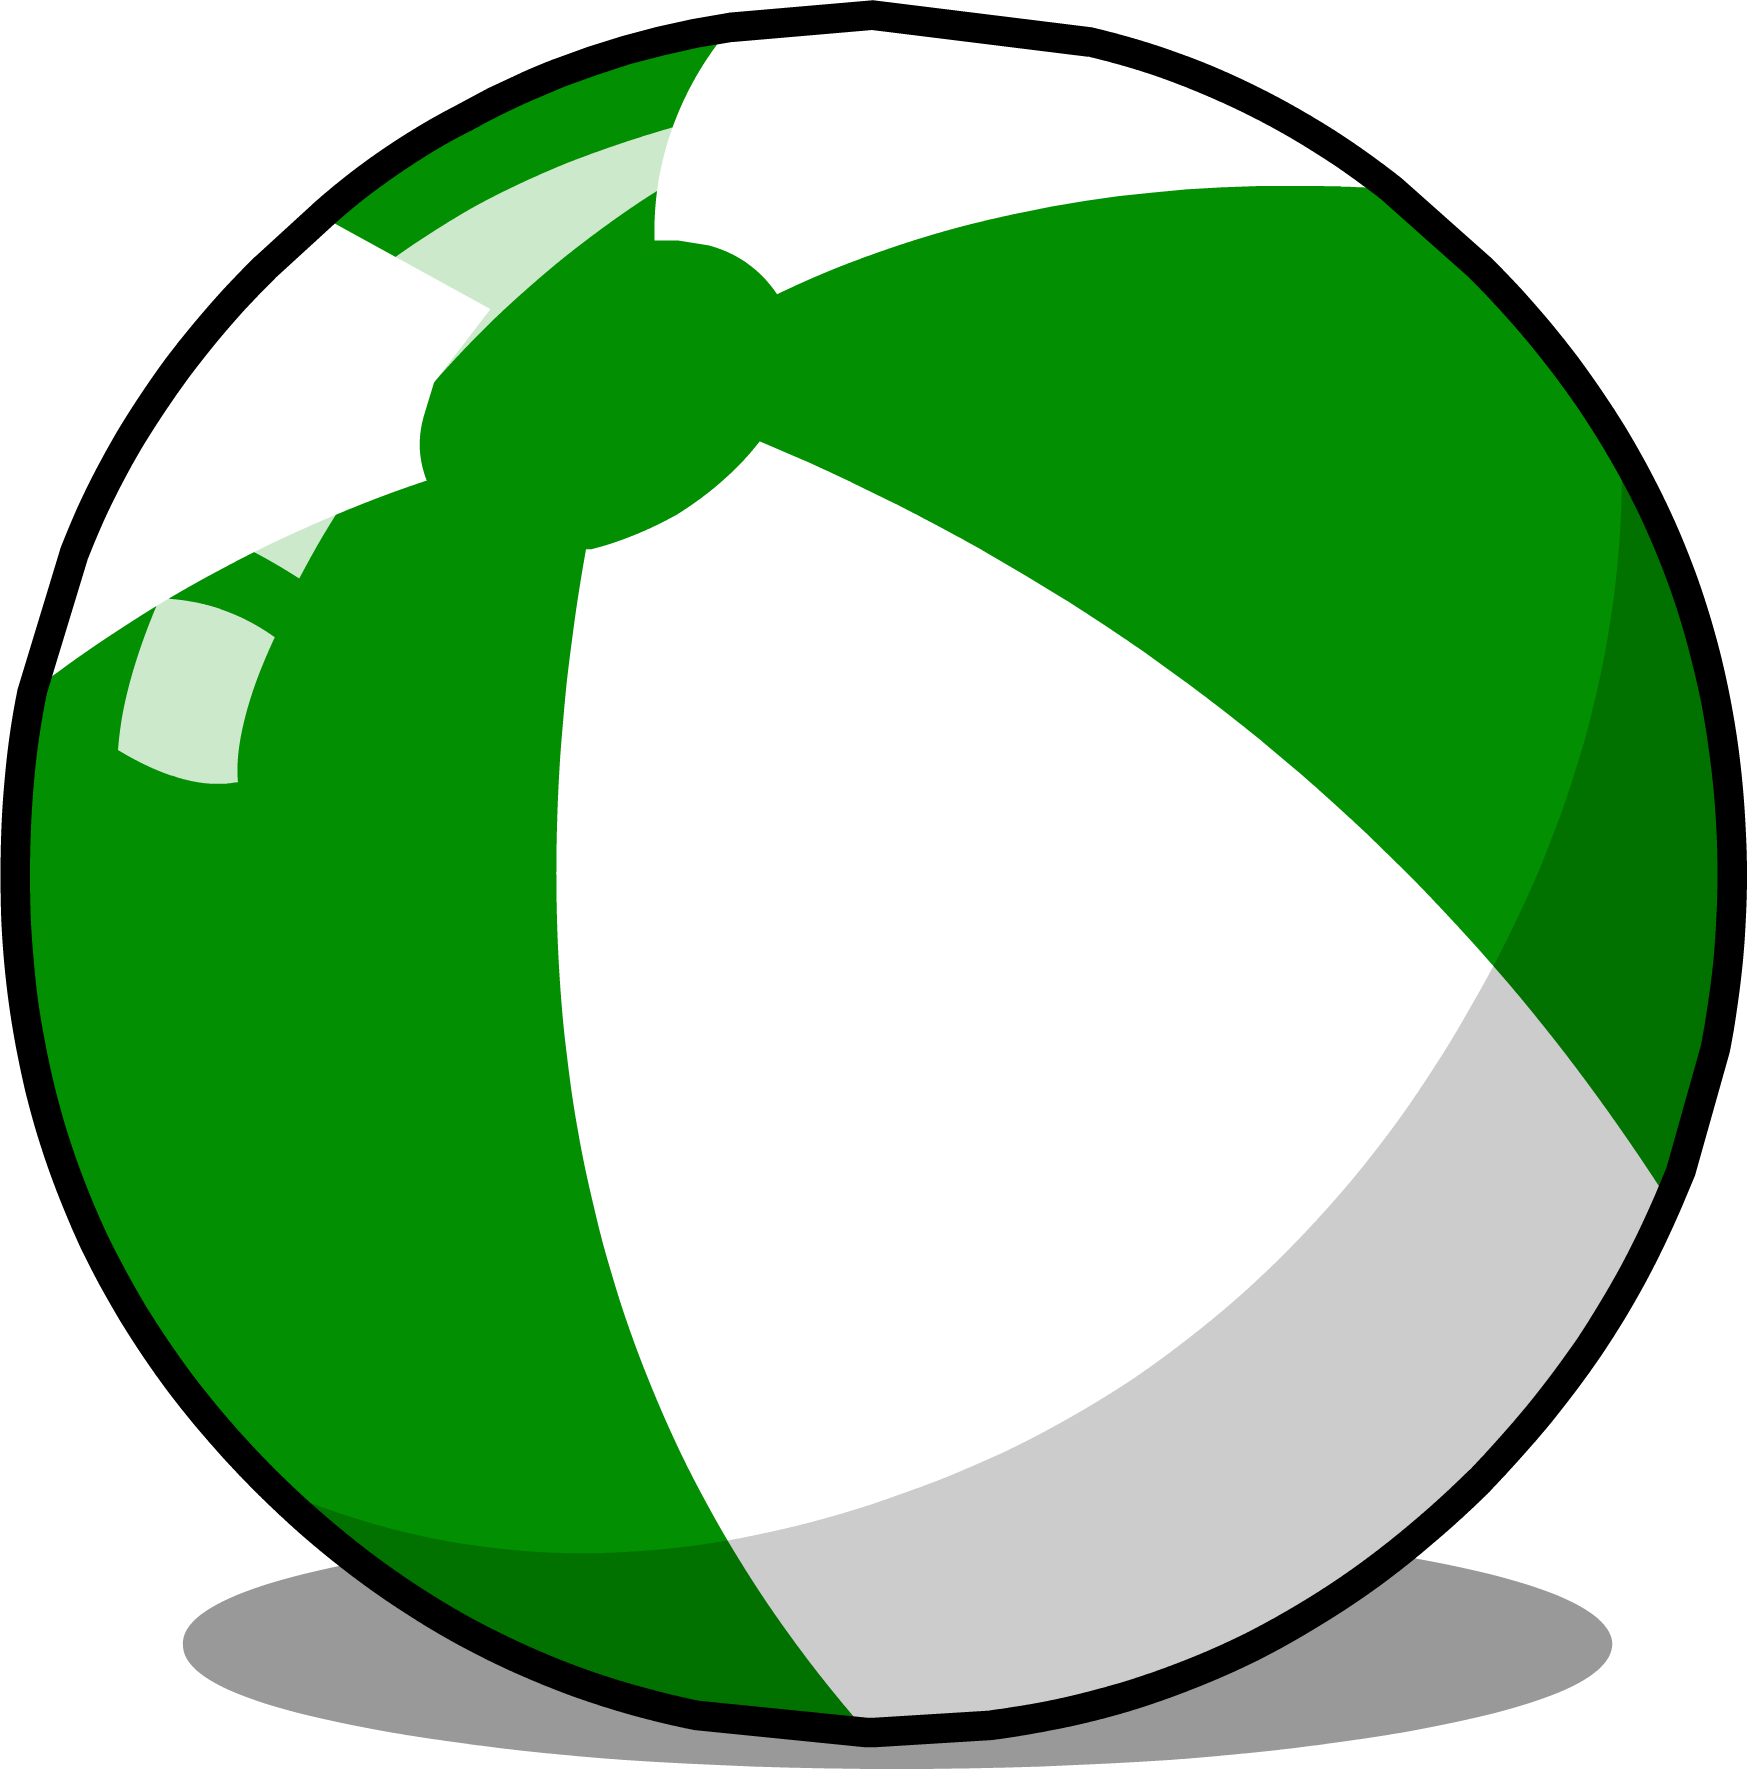 Image beach club penguin. Ball sprite png graphic black and white download